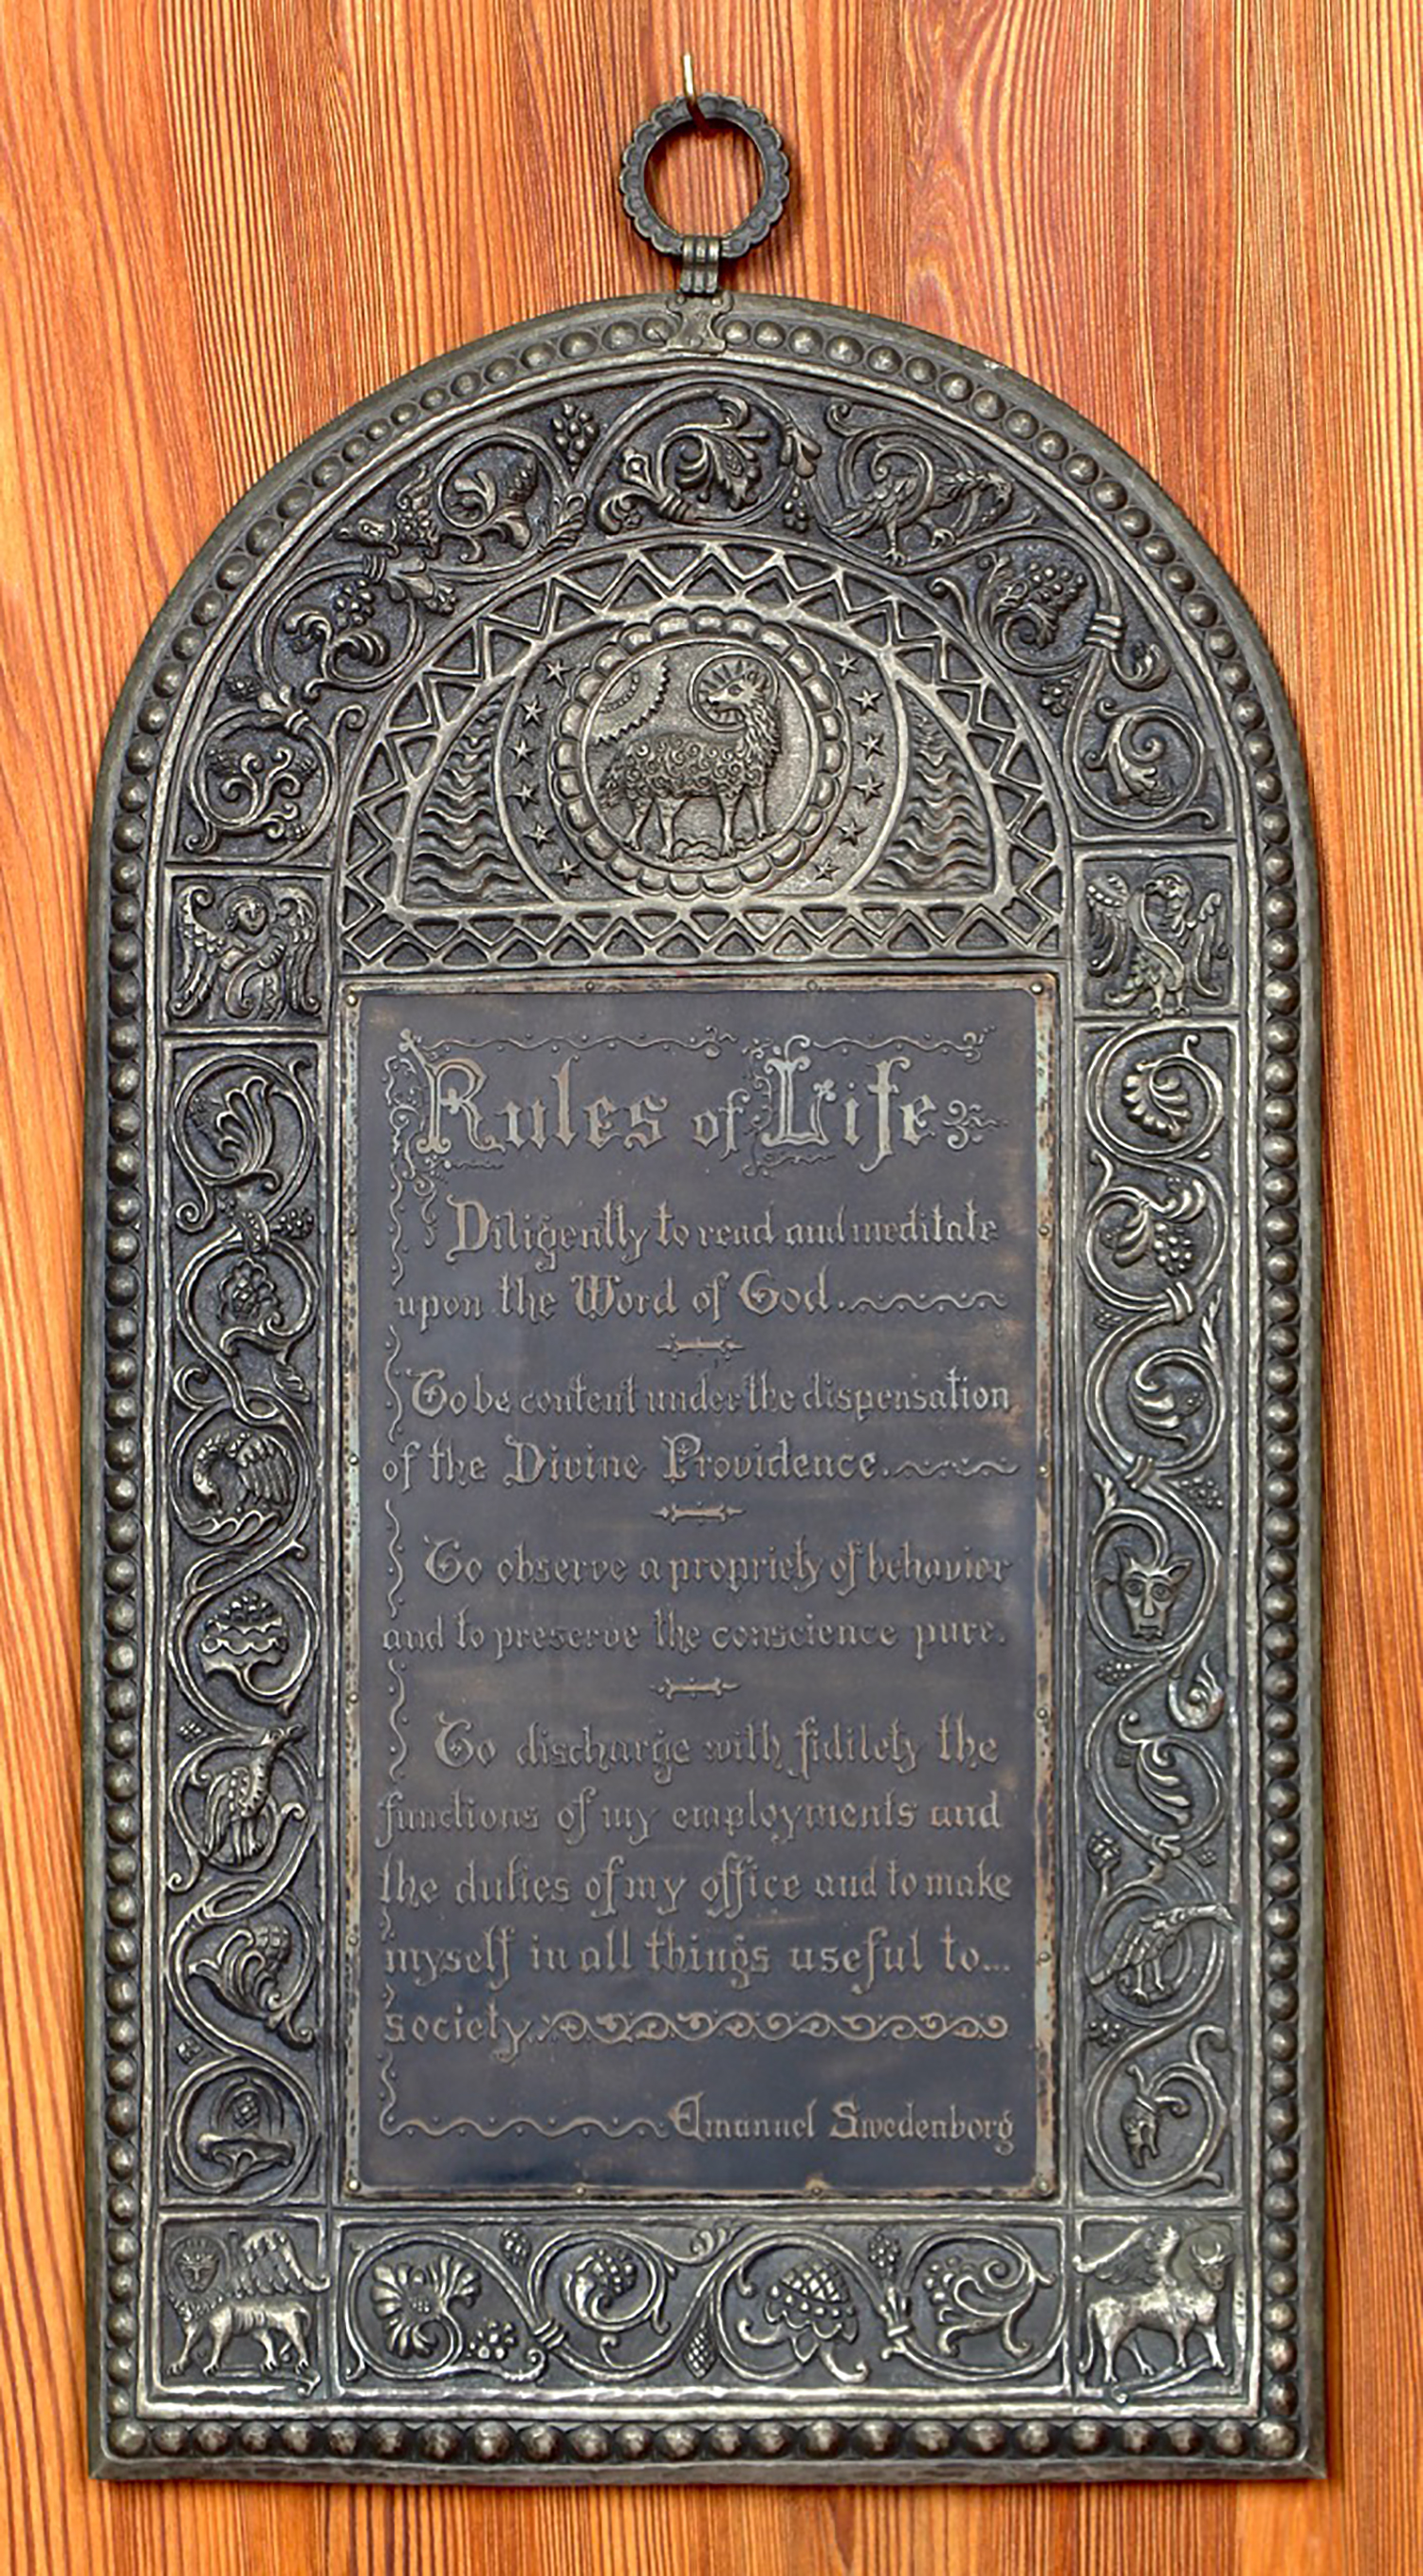 "Figure 6: A plaque with Emanuel Swedenborg's ""Rules of Life,"" made from monel metal, hung on one of the walls of Cairnwood's chapel. The plaque was commissioned by Raymond Pitcairn and made by John Joseph Walter, who also did metalwork for Bryn Athyn Cathedral. The text reads: ""Diligently to read and meditate upon the Word of God. To be content under the dispensation of the Divine Providence. To observe a propriety of behavior and to preserve the conscience pure. To discharge with fidelity the functions of my employments and the duties of my office and to make myself in all things useful to society."""